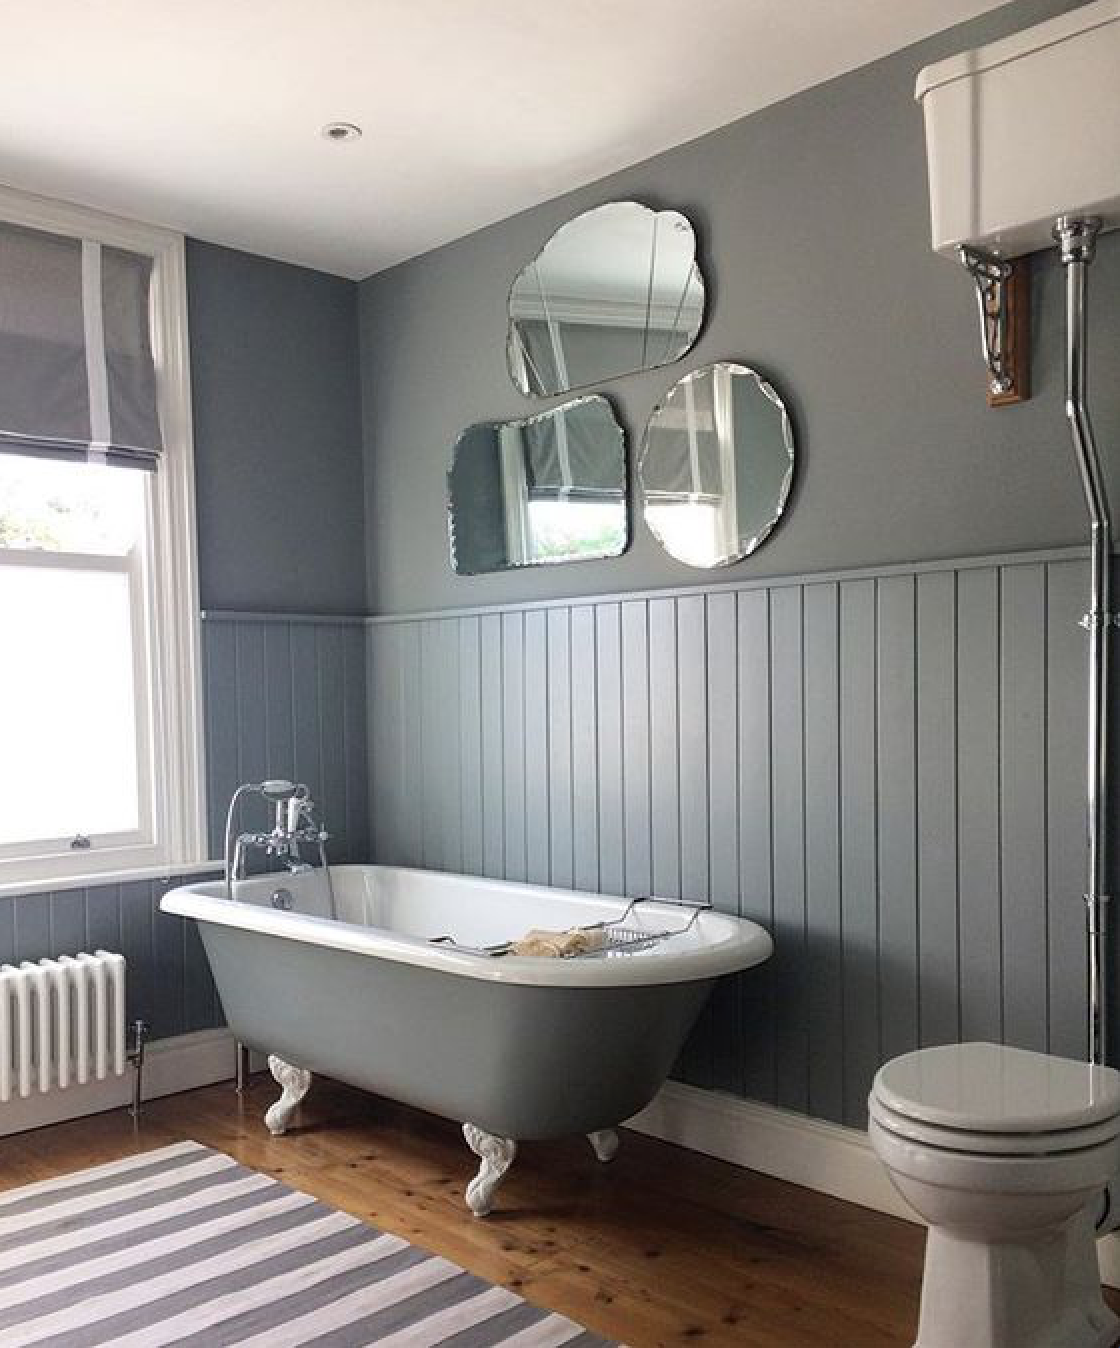 In thehome of the husband-and-wife teambehind UK housewares shop Hare & Wilde, a washable gray-striped rug makes for easy upkeep. Photograph courtesy of Hare & Wilde.